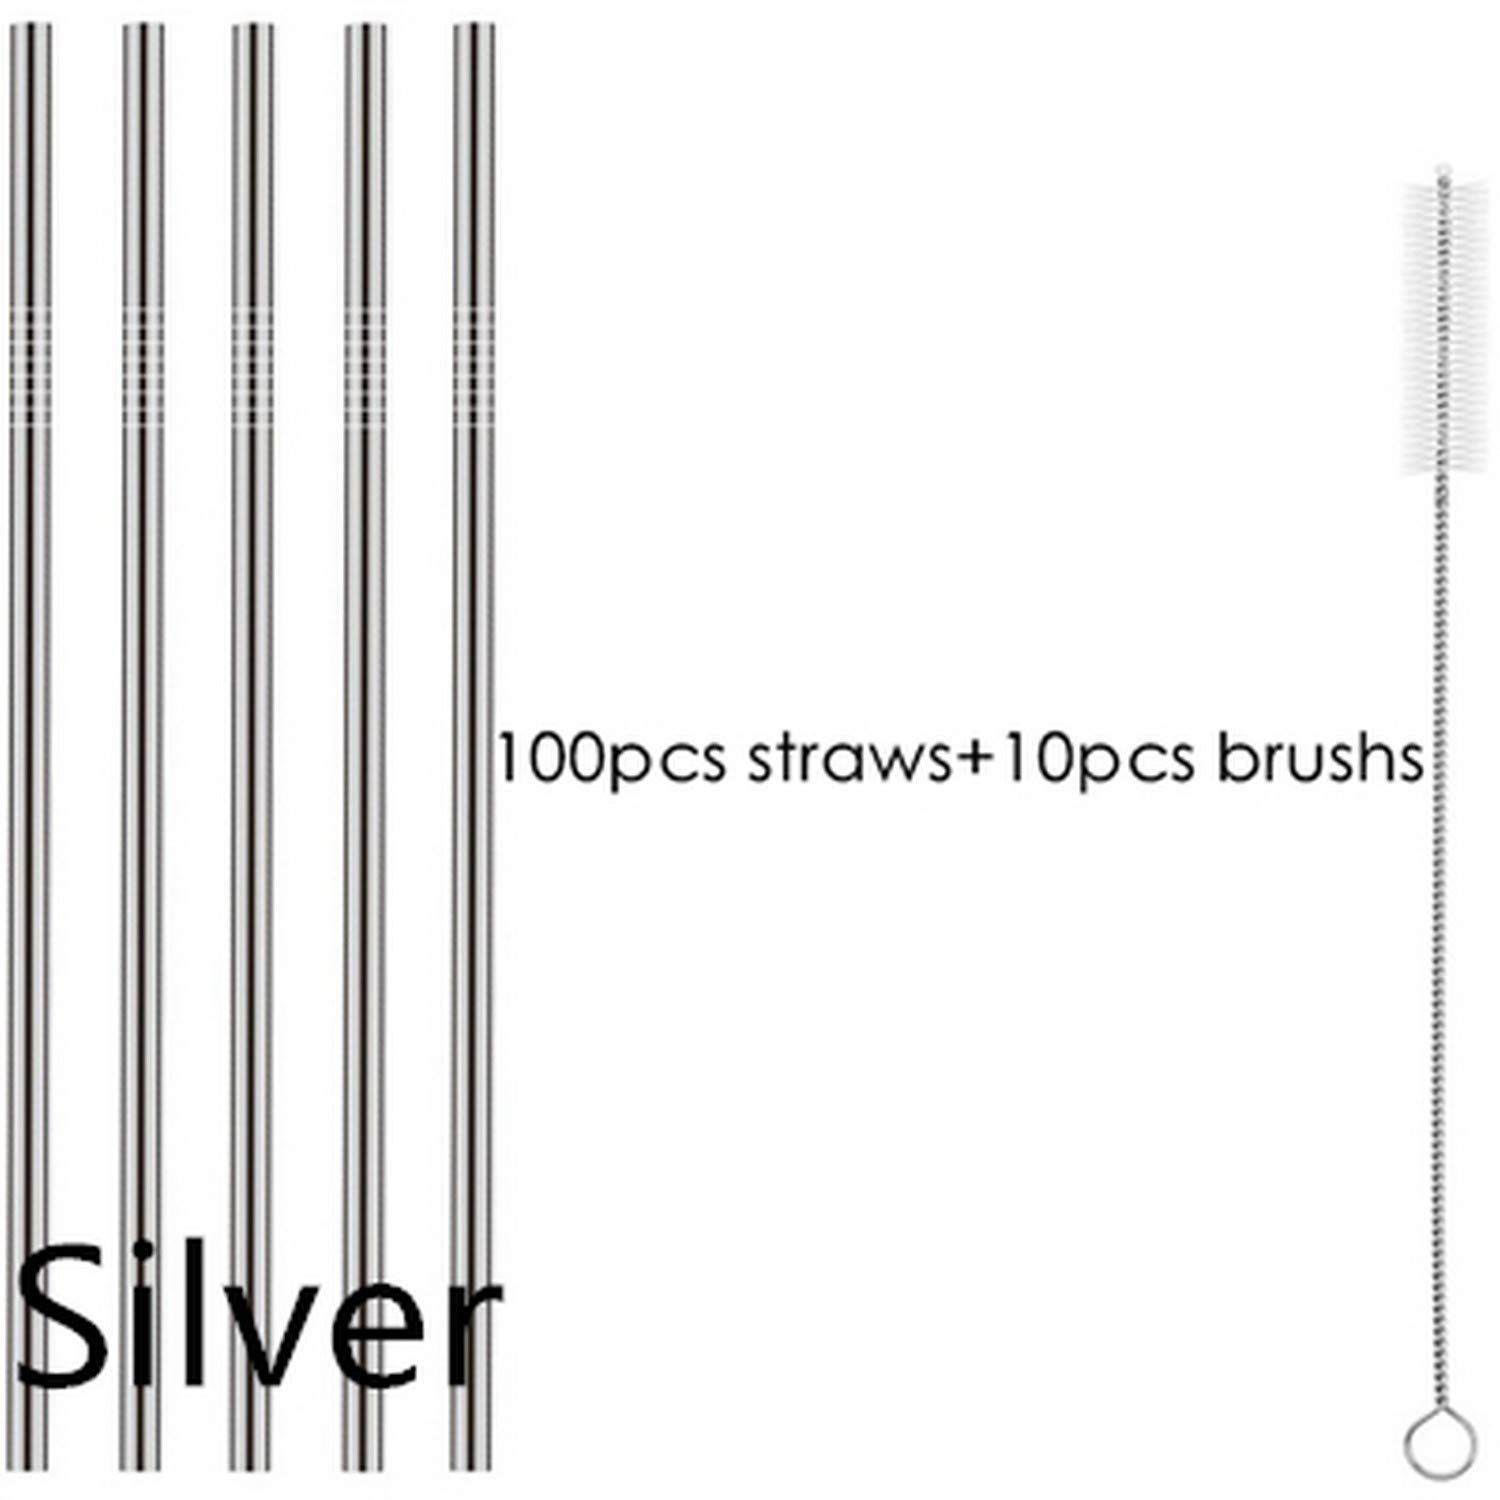 100Pcs Straws + 10Pcs Brushs Straight Or Bent Metal Drinking Straw Stainless Steel Reusable Straws for Beer Fruit Juice Drink by Moange